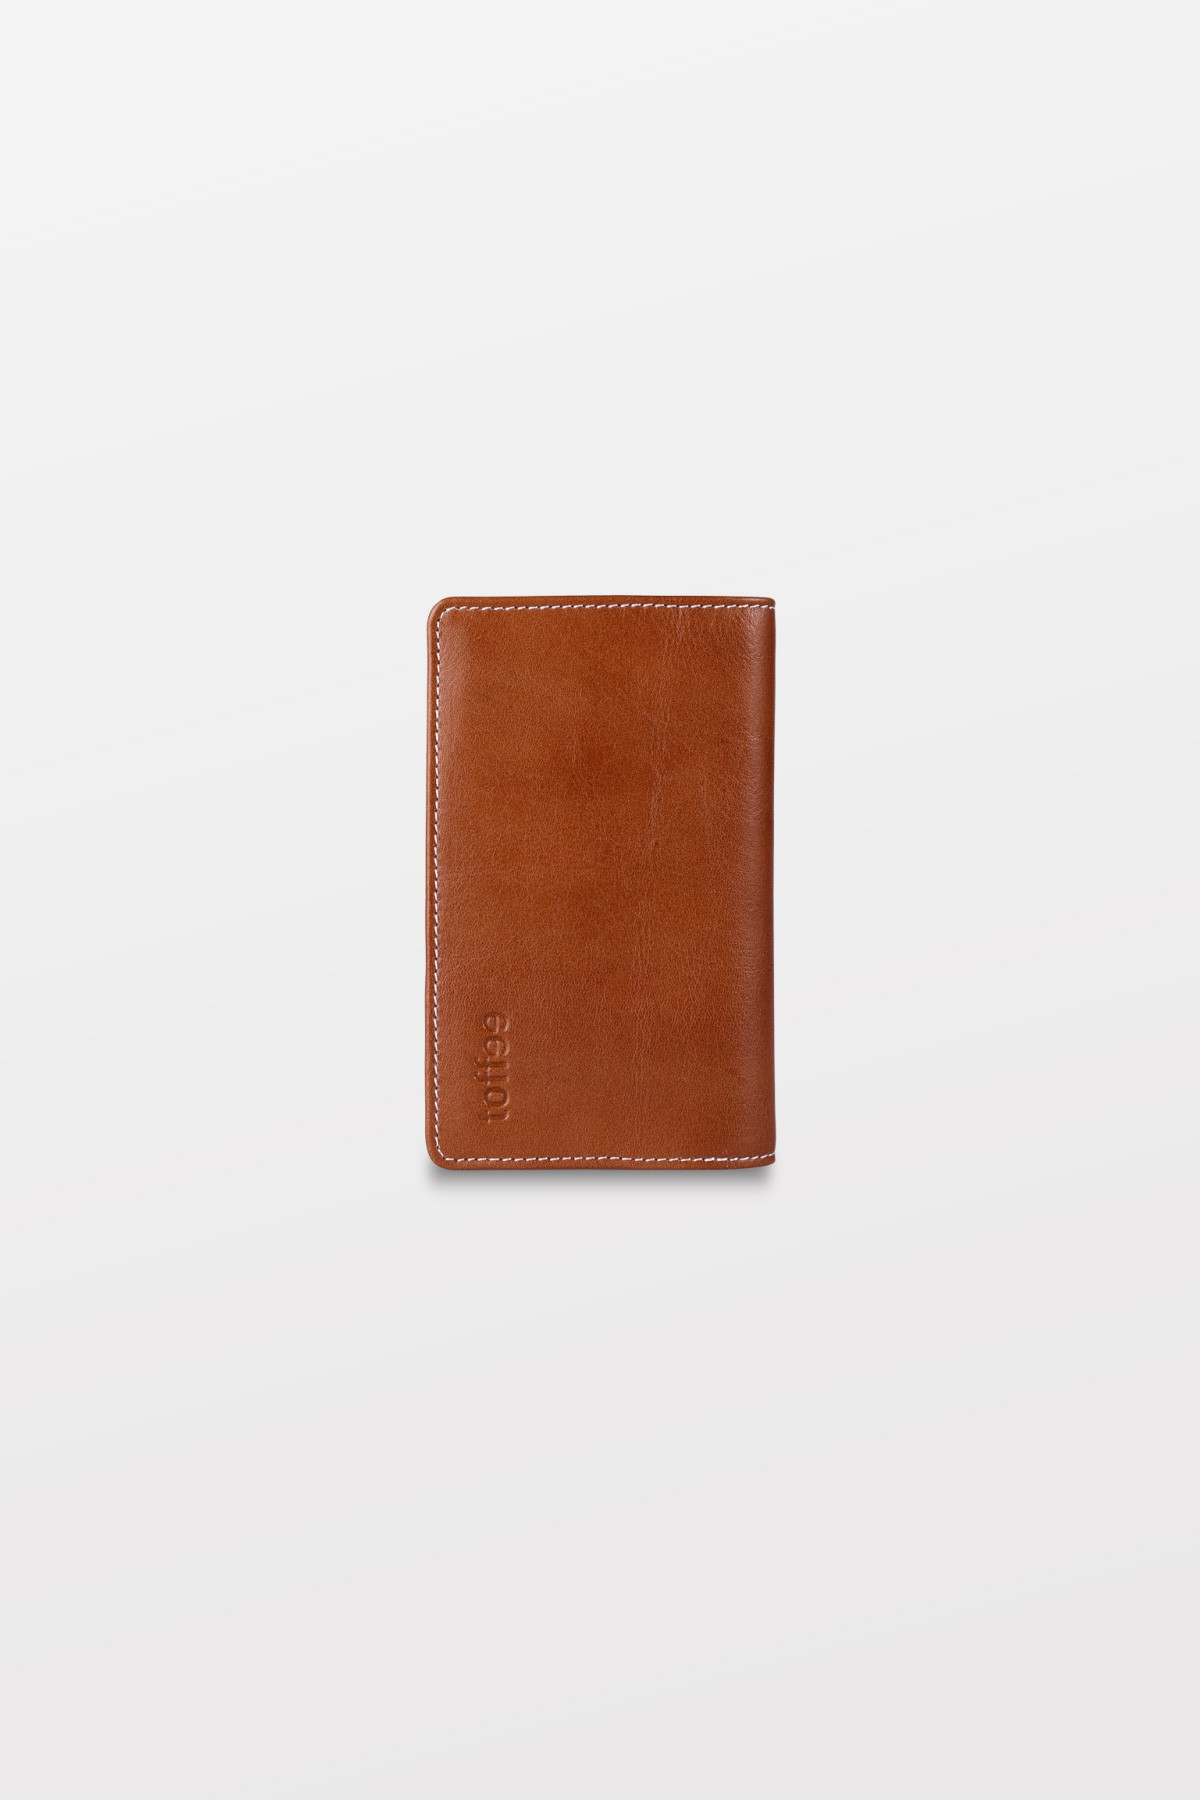 Toffee leather fold wallet for iPhone 5s - Tan